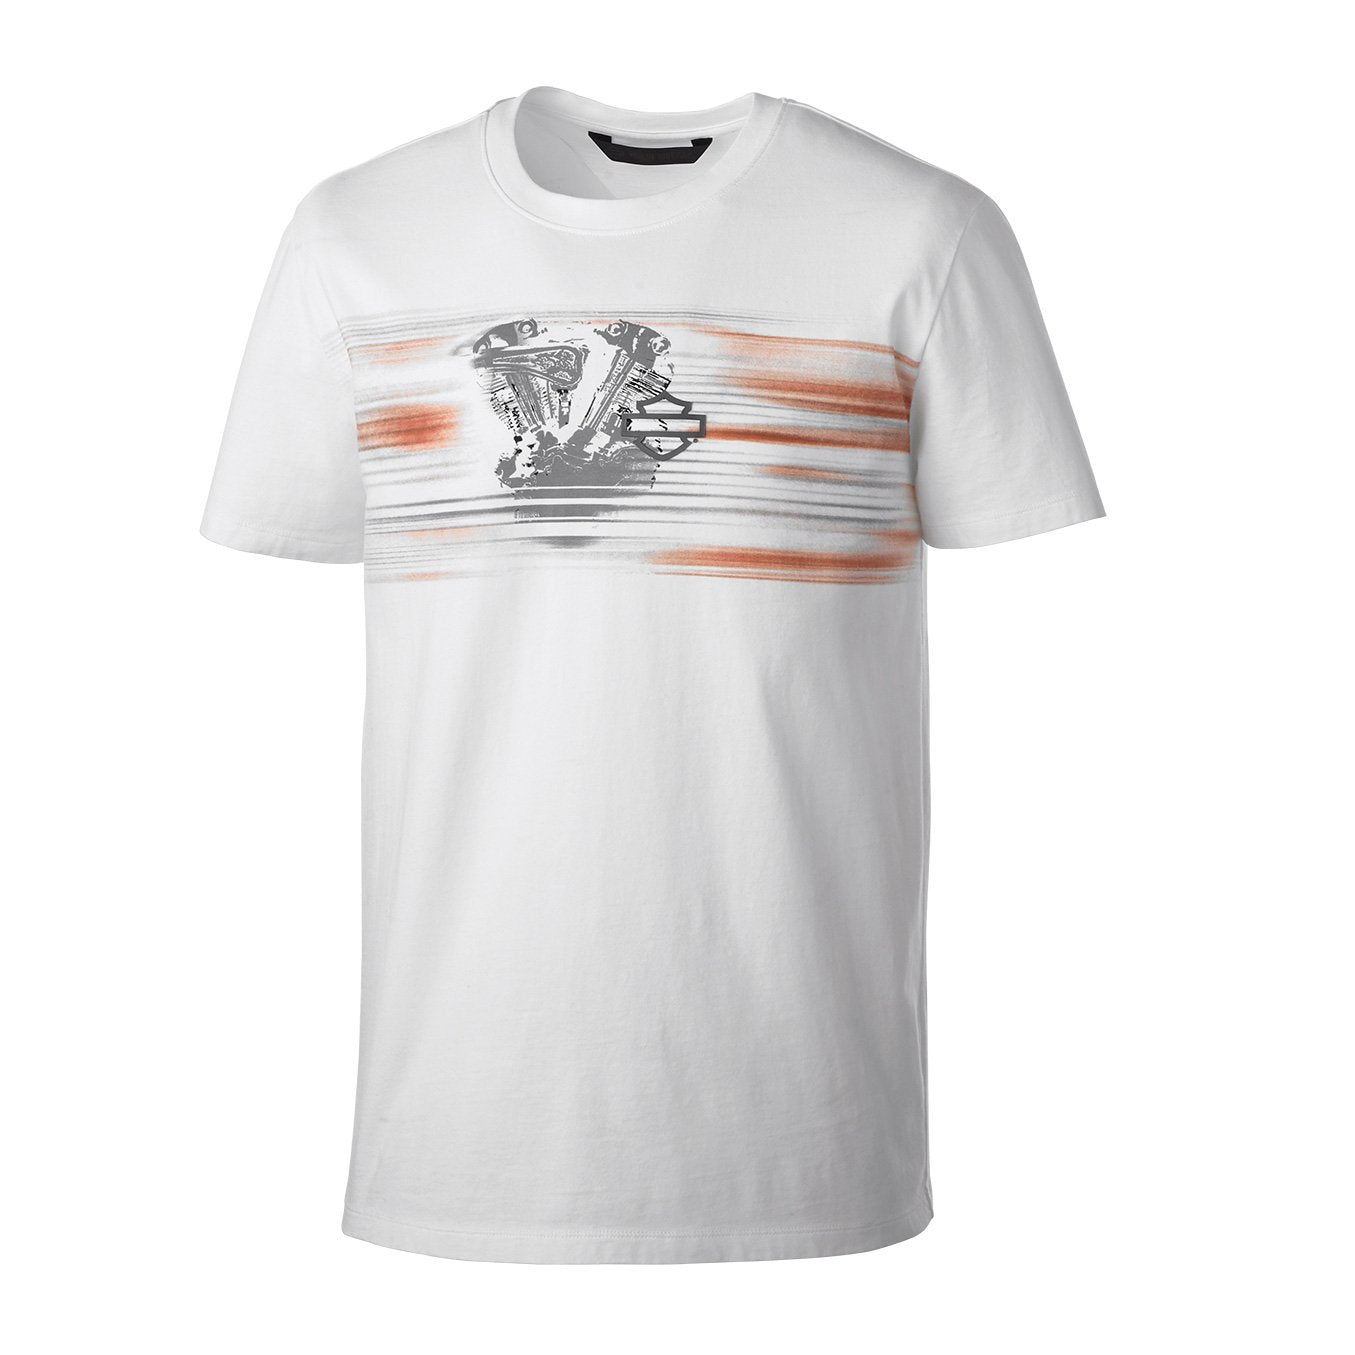 Harley Davidson 174 Men S Layered Print Slim Fit Tee 99152